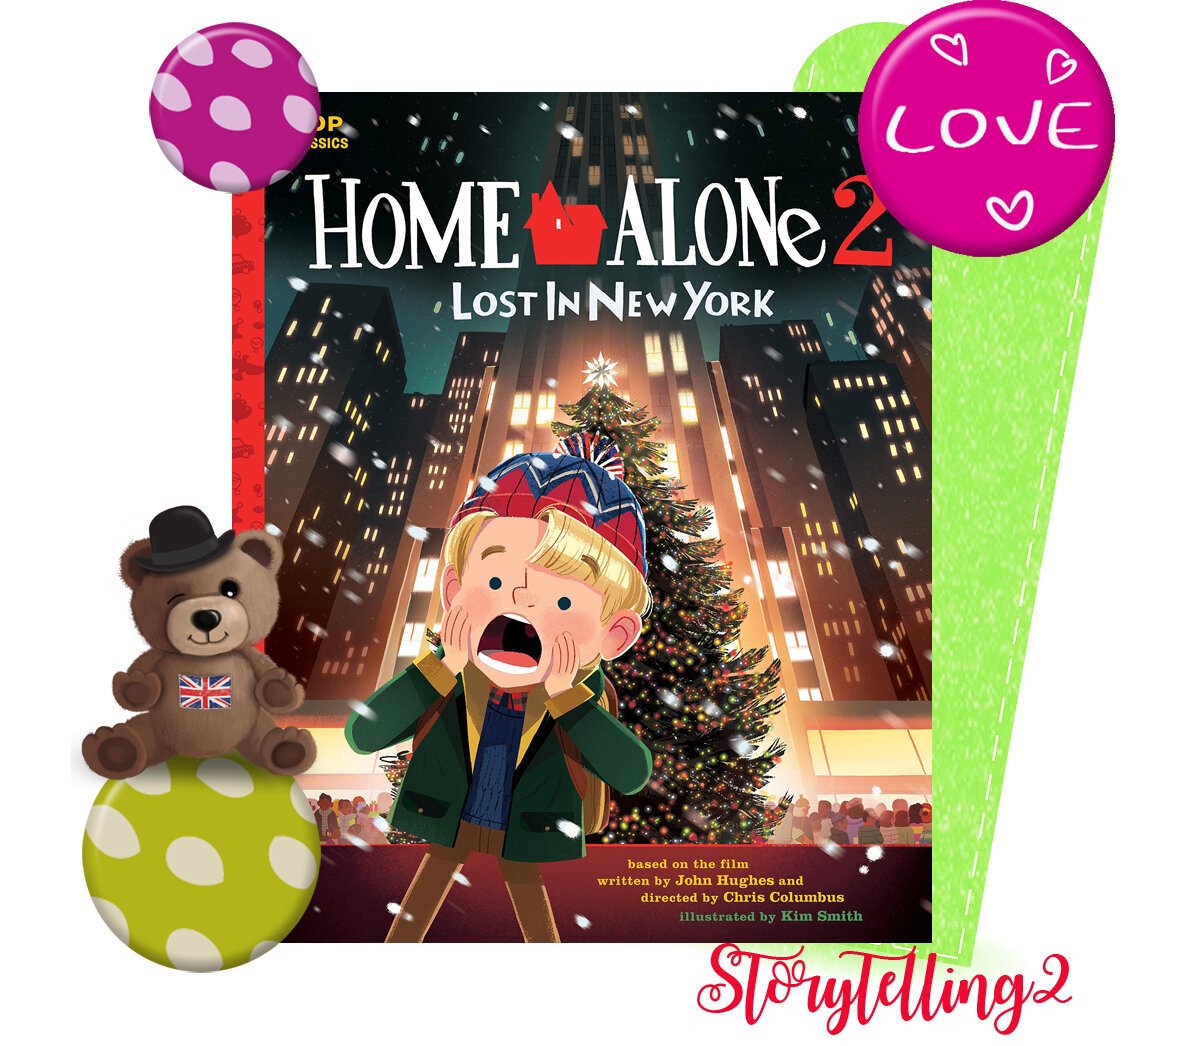 Home alone 2, lost in NY, séquence Christmas cycle 3